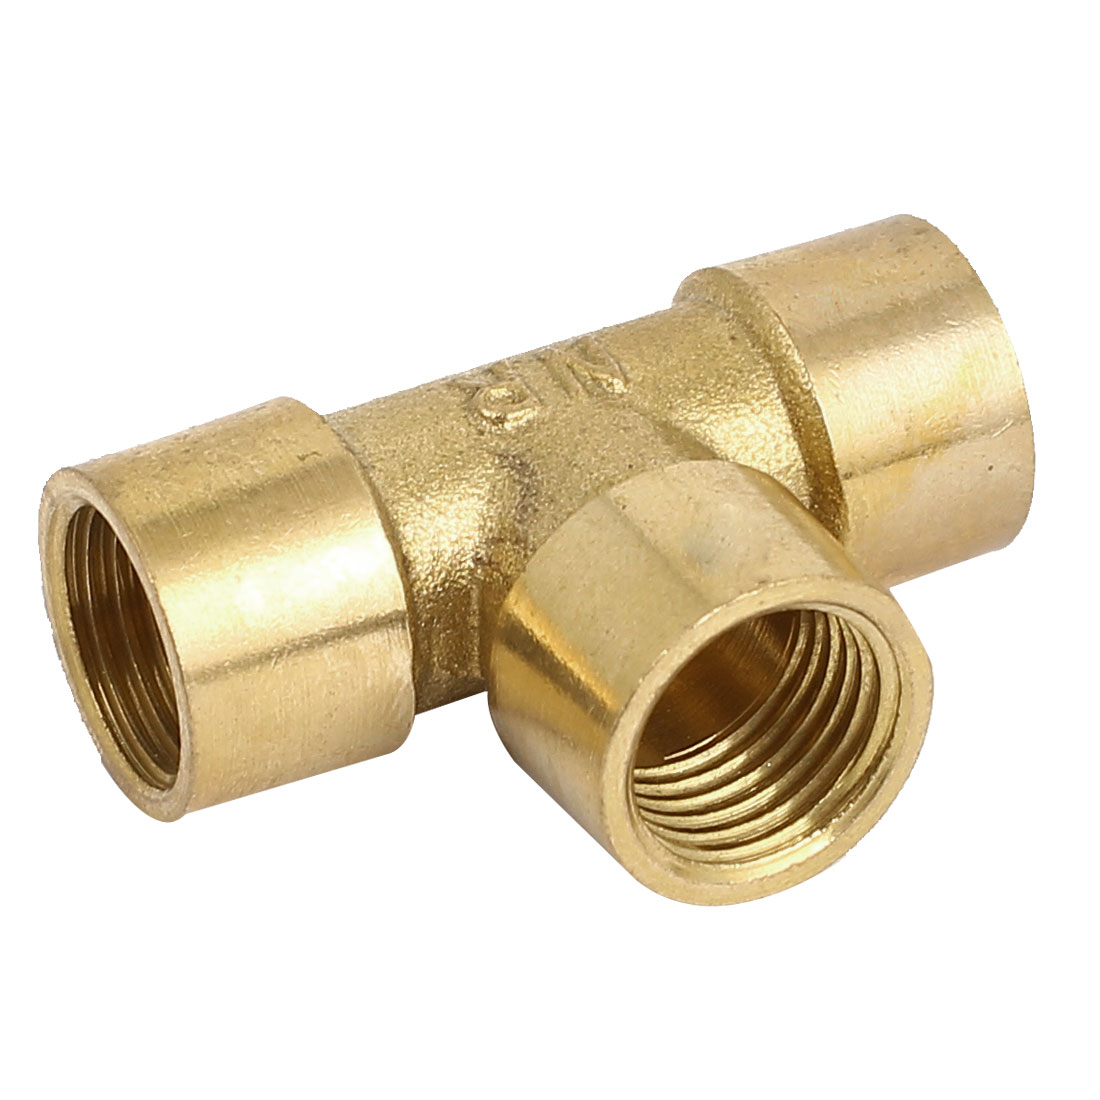 1/4BSP Female Threaded 3 Ways Cross Coupler Adapter Pipe Fitting Brass Tone